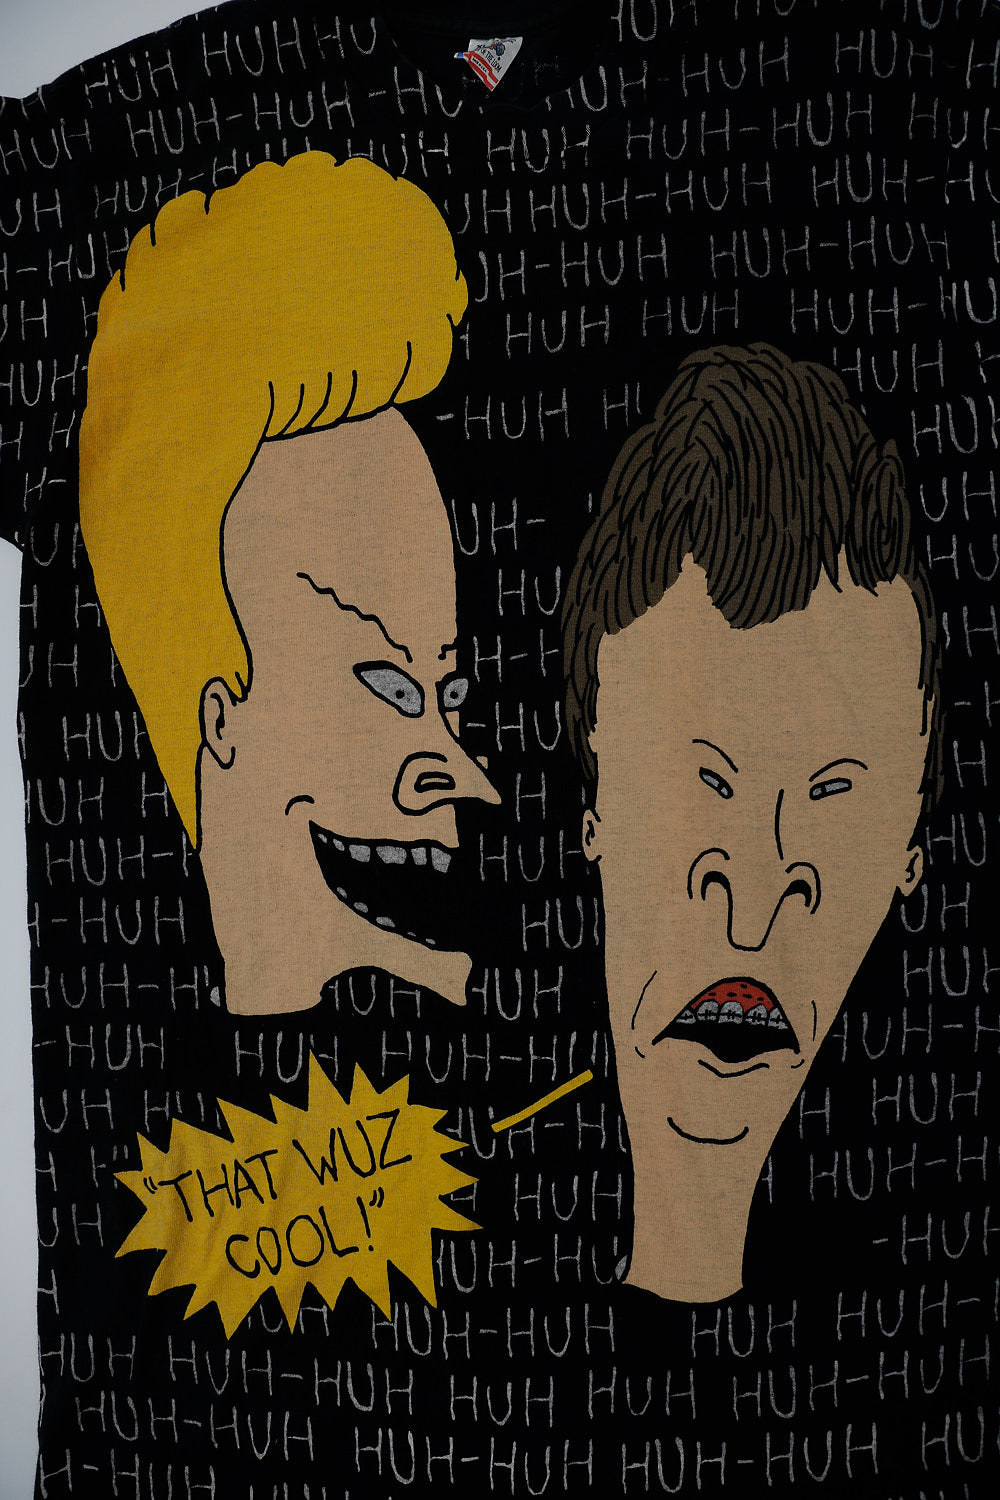 BEAVIS AND BUTTHEAD ALL OVER PRINT HUH-HUH